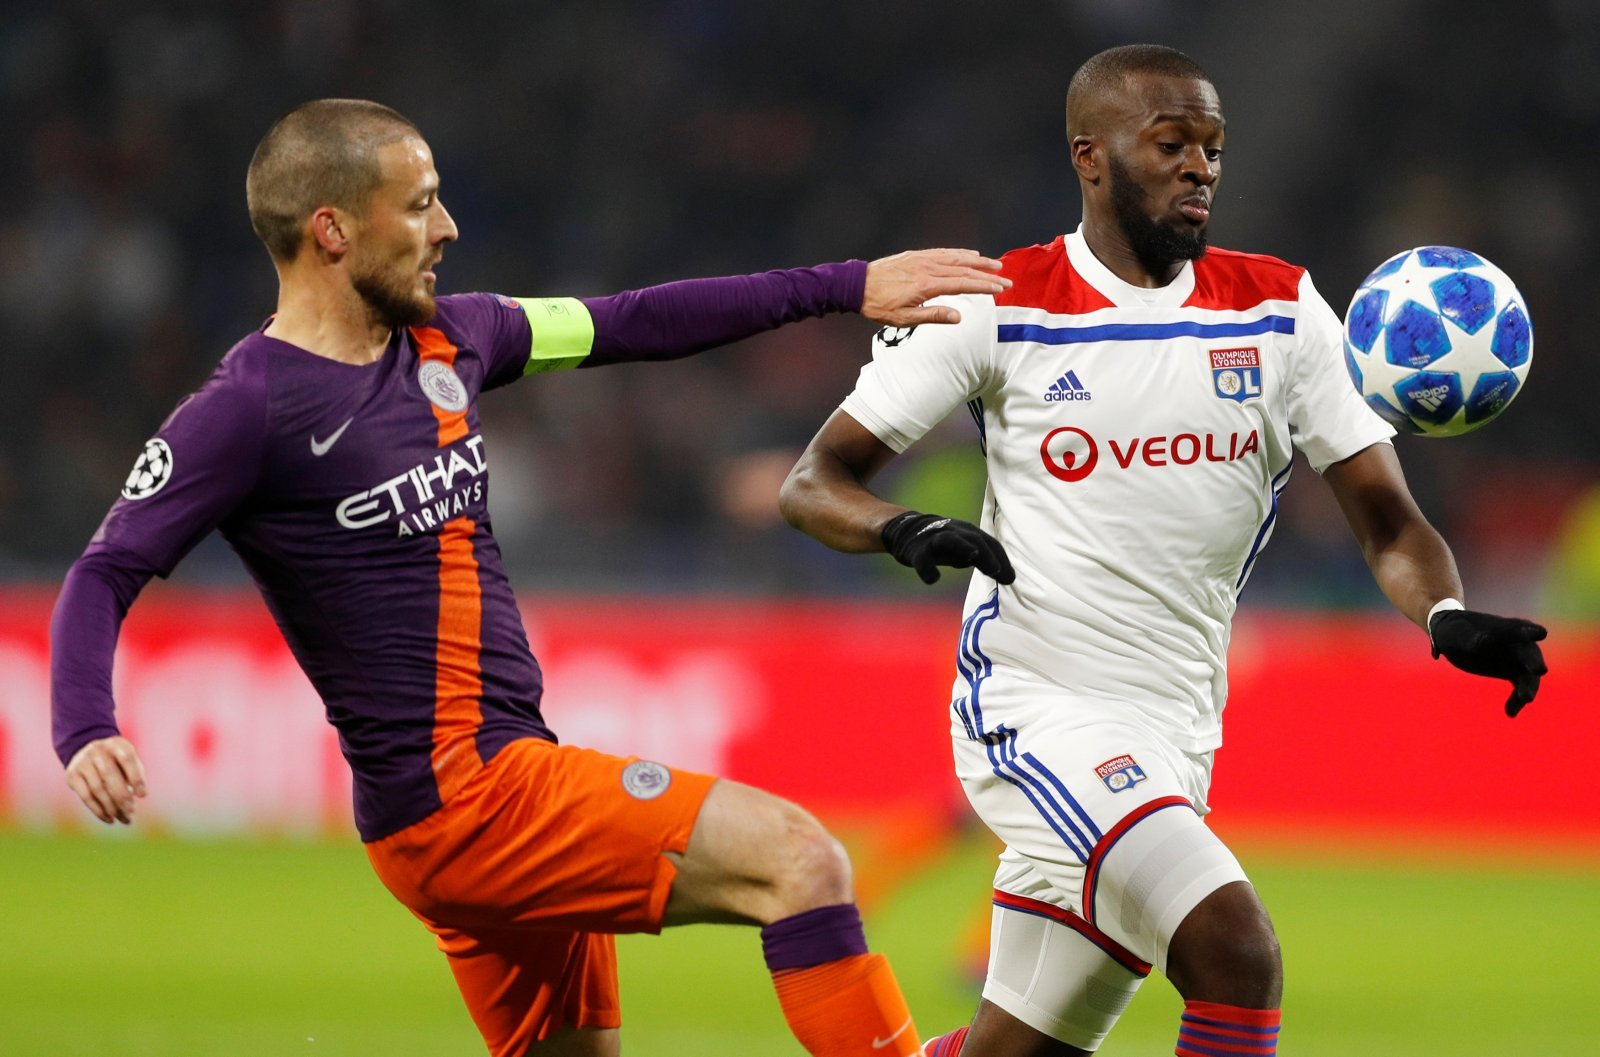 Man City would have their own Kante if Pep signs Ndombele